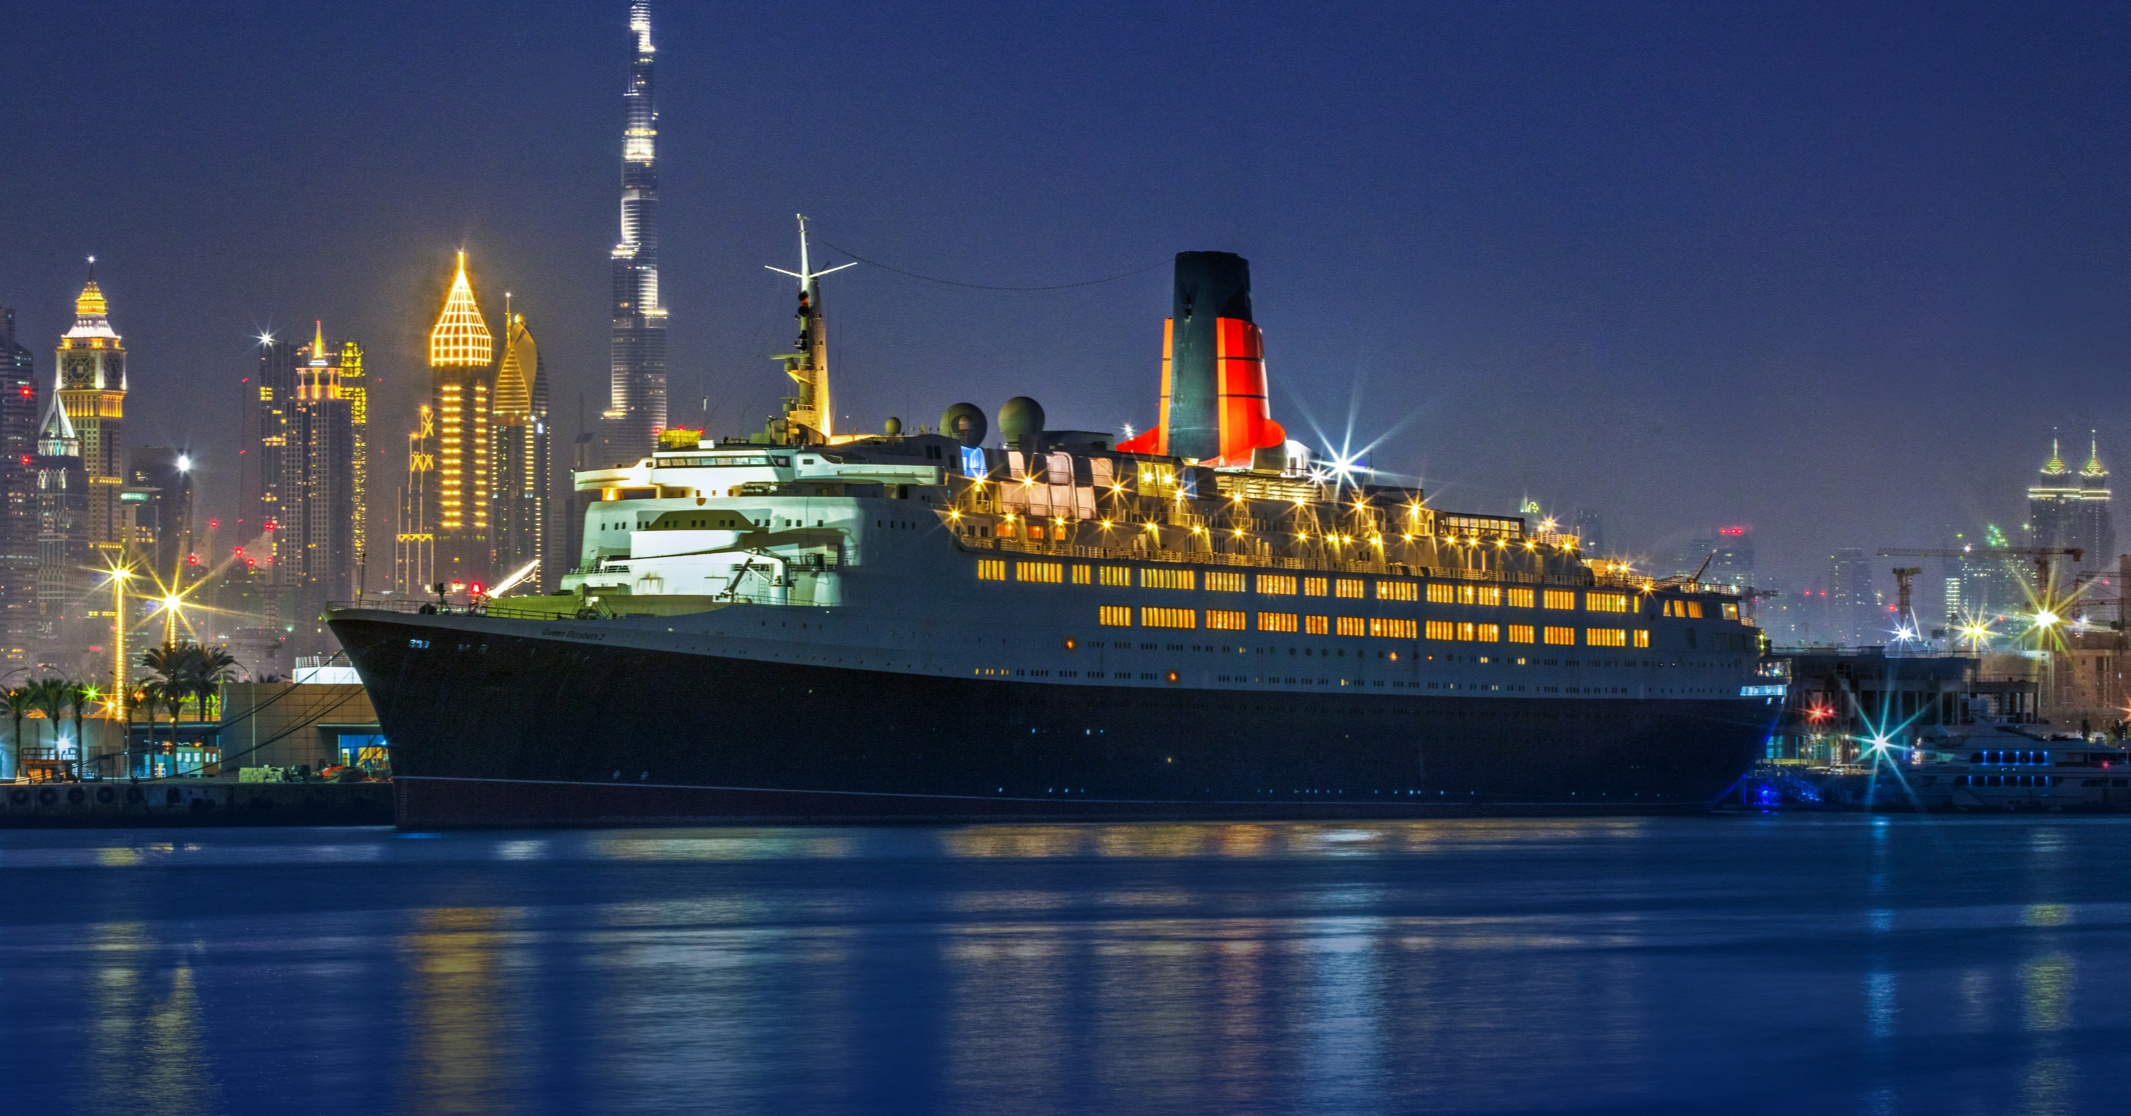 queen-elizabeth-2-ship-cruise-ship-qe2-fe